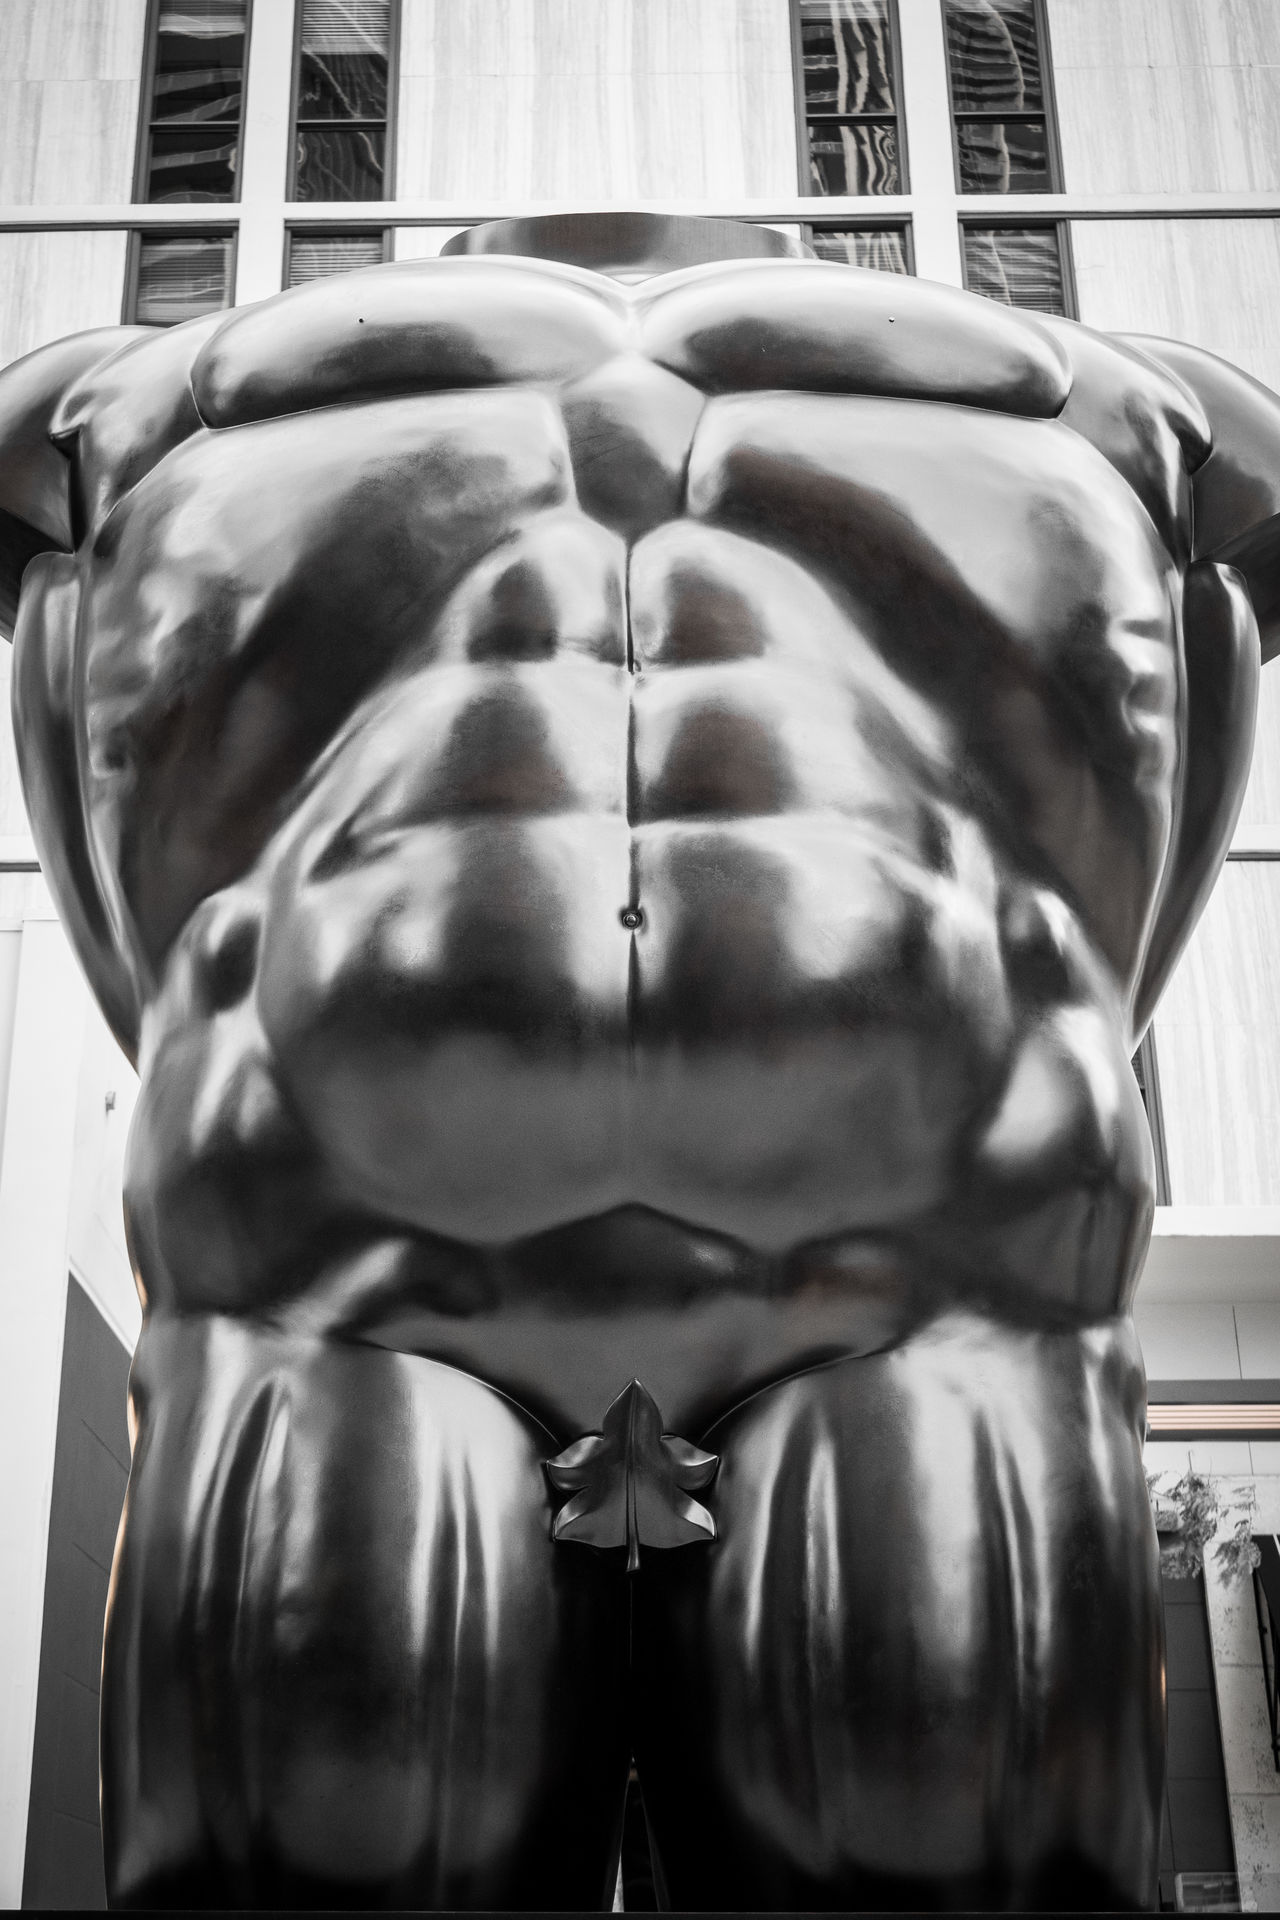 Impressive Six Pack and Tiny Fig Leaf Art ArtWork Belly Belly Button Blacknwhite_perfection Bodyart Bodybuilding Bw Bw_collection Fig Leaf Florida Free Impressive Leaf Make America Great Again Muscles Six Pack Small Statue Stealth Tiny Upper Body USA USAtrip